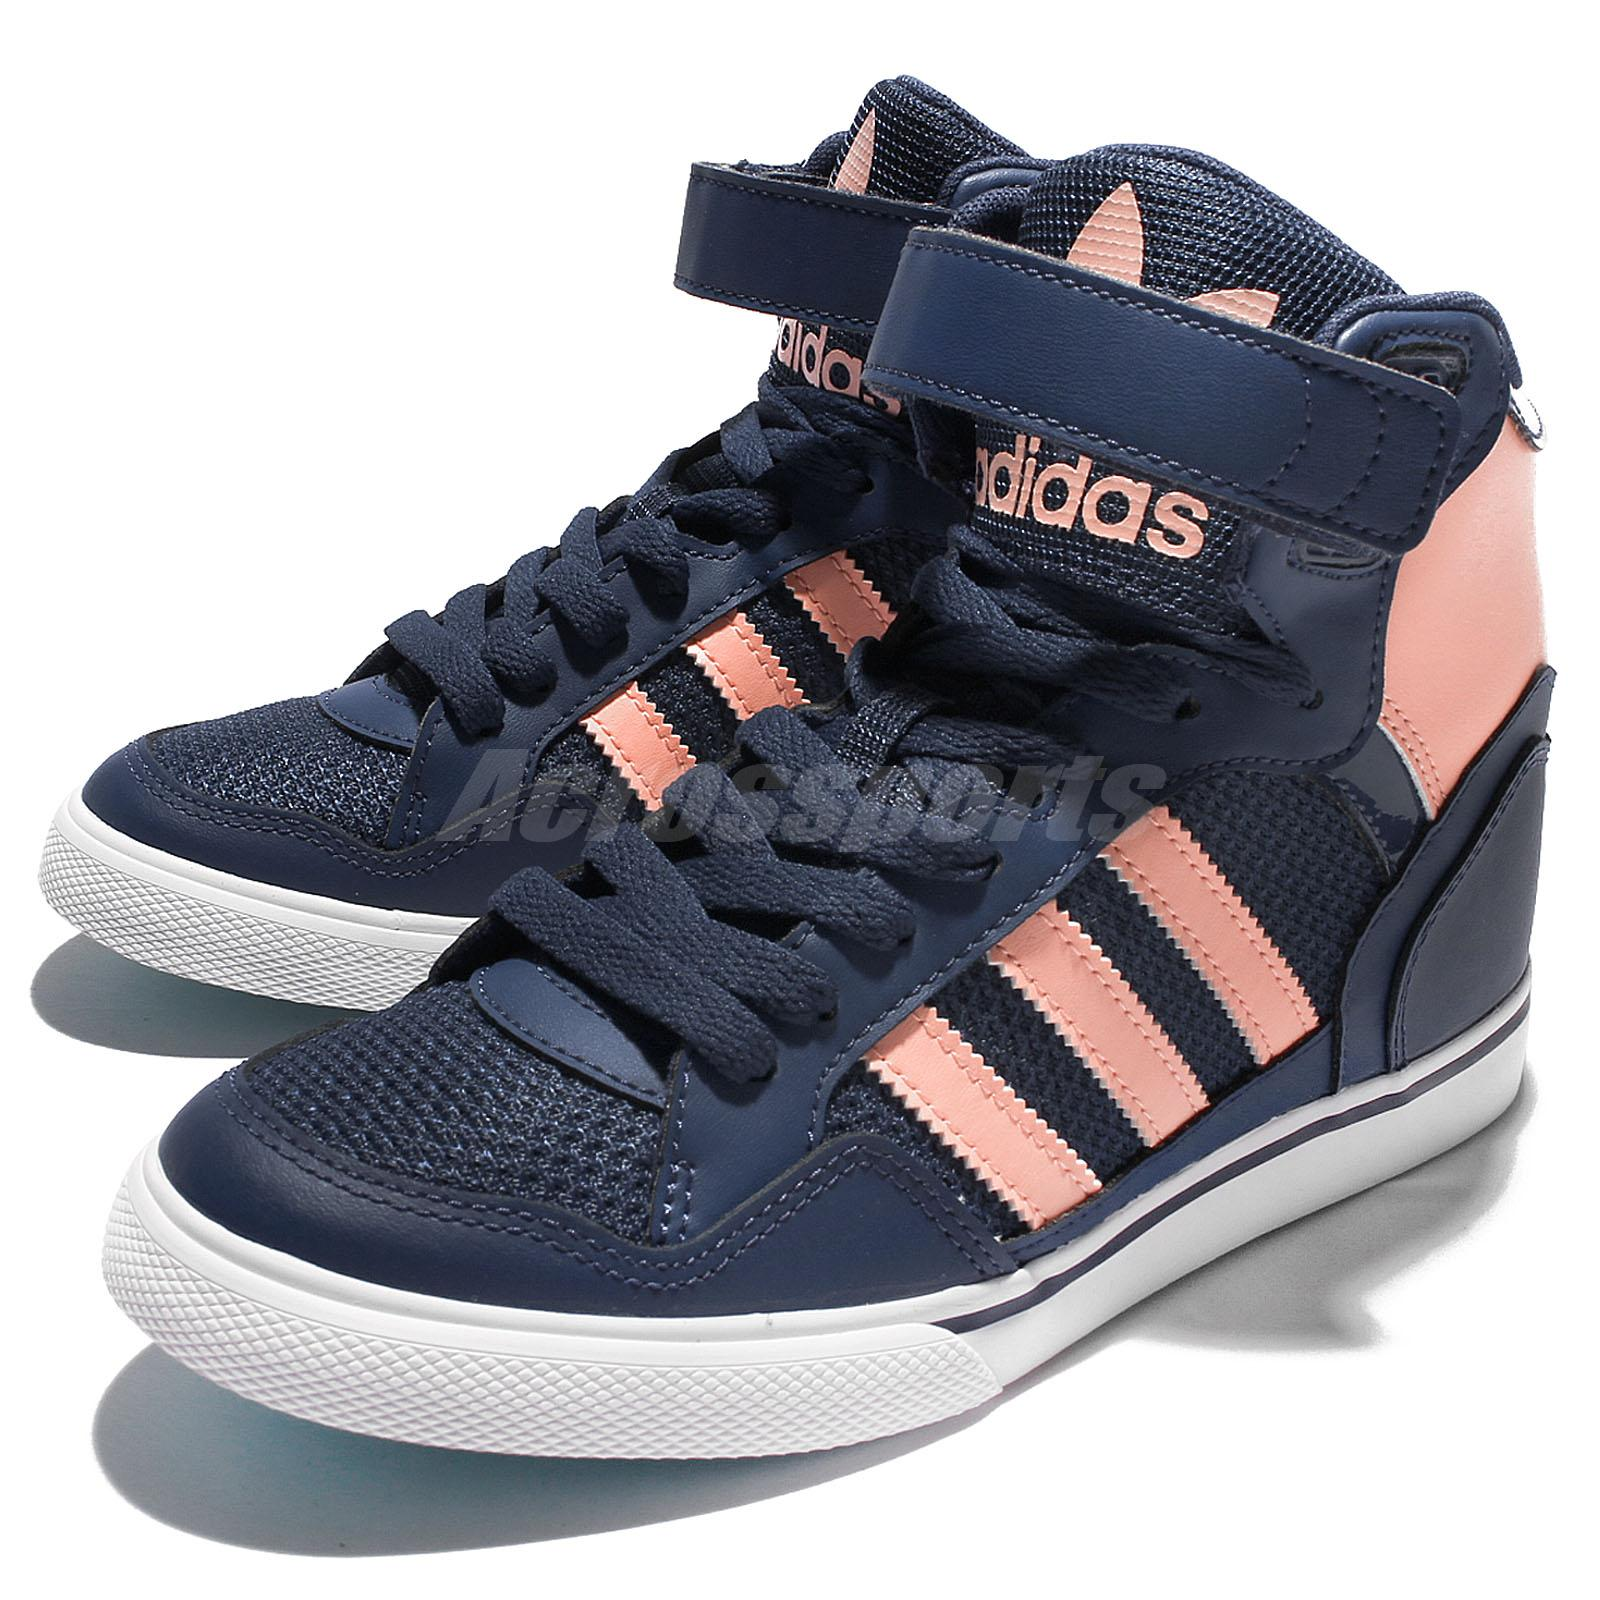 the latest 75728 3d1d4 Details about adidas Originals Extaball Up W Navy Pink Women Wedge Casual  Shoes Sneaker BY2330